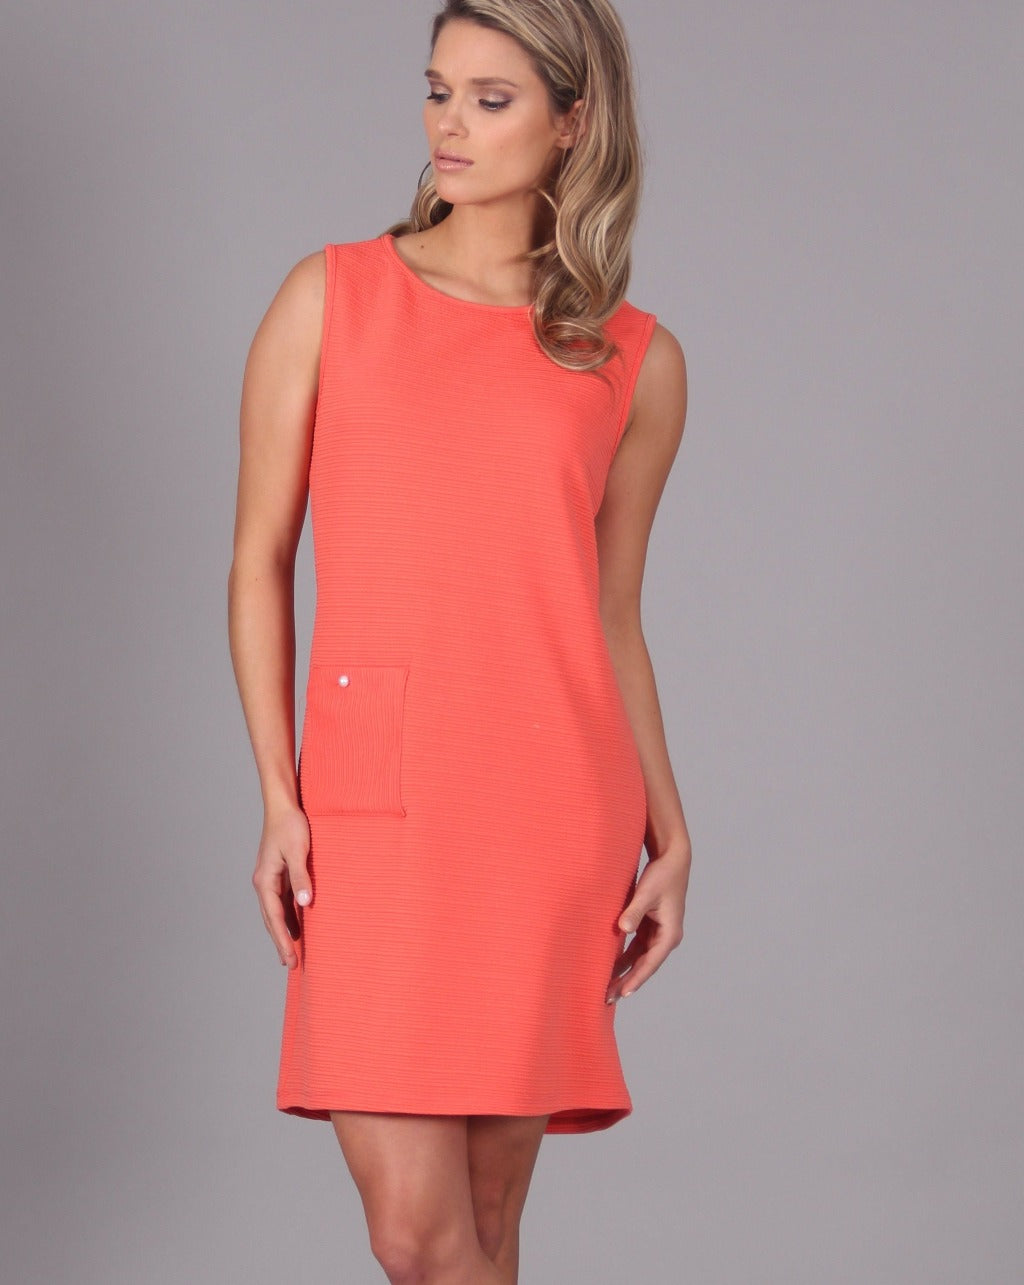 JAZZ Sleeveless Shift Dress